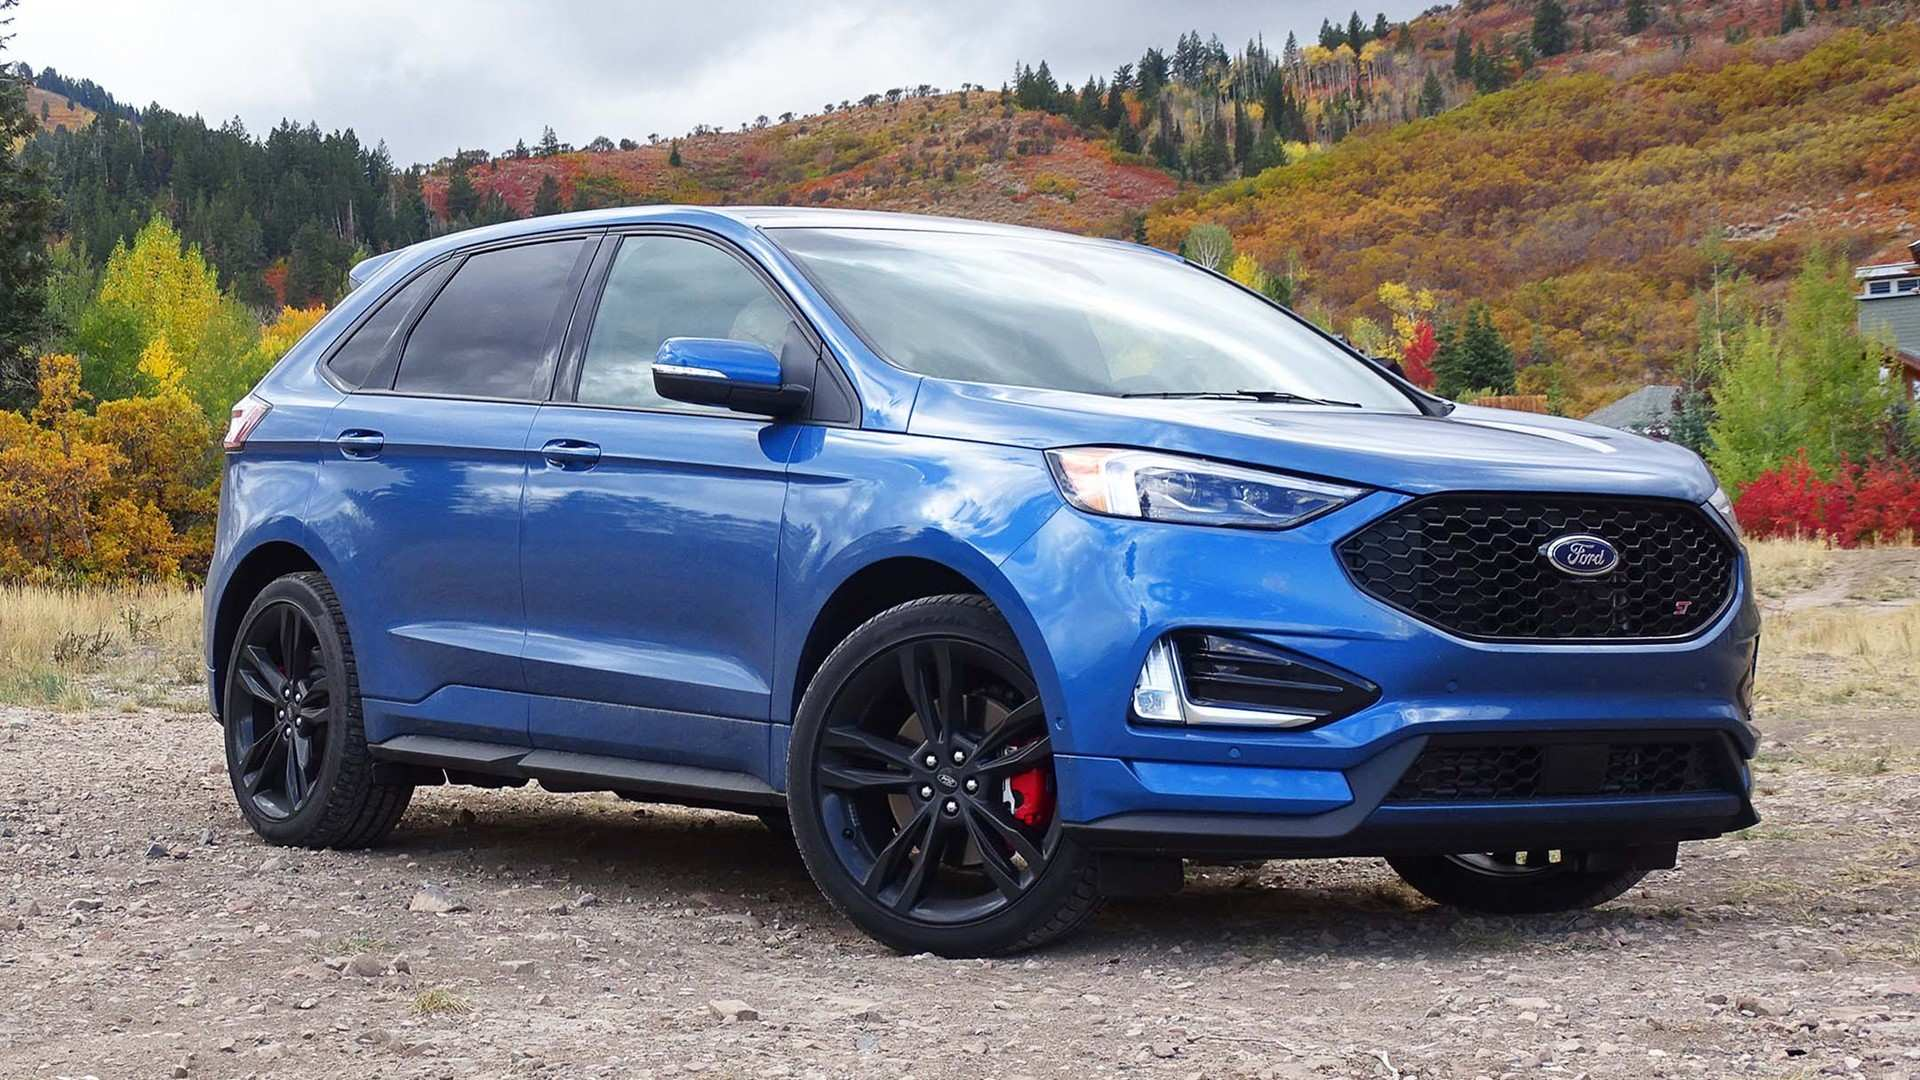 44 Great 2019 Ford Edge Price with 2019 Ford Edge